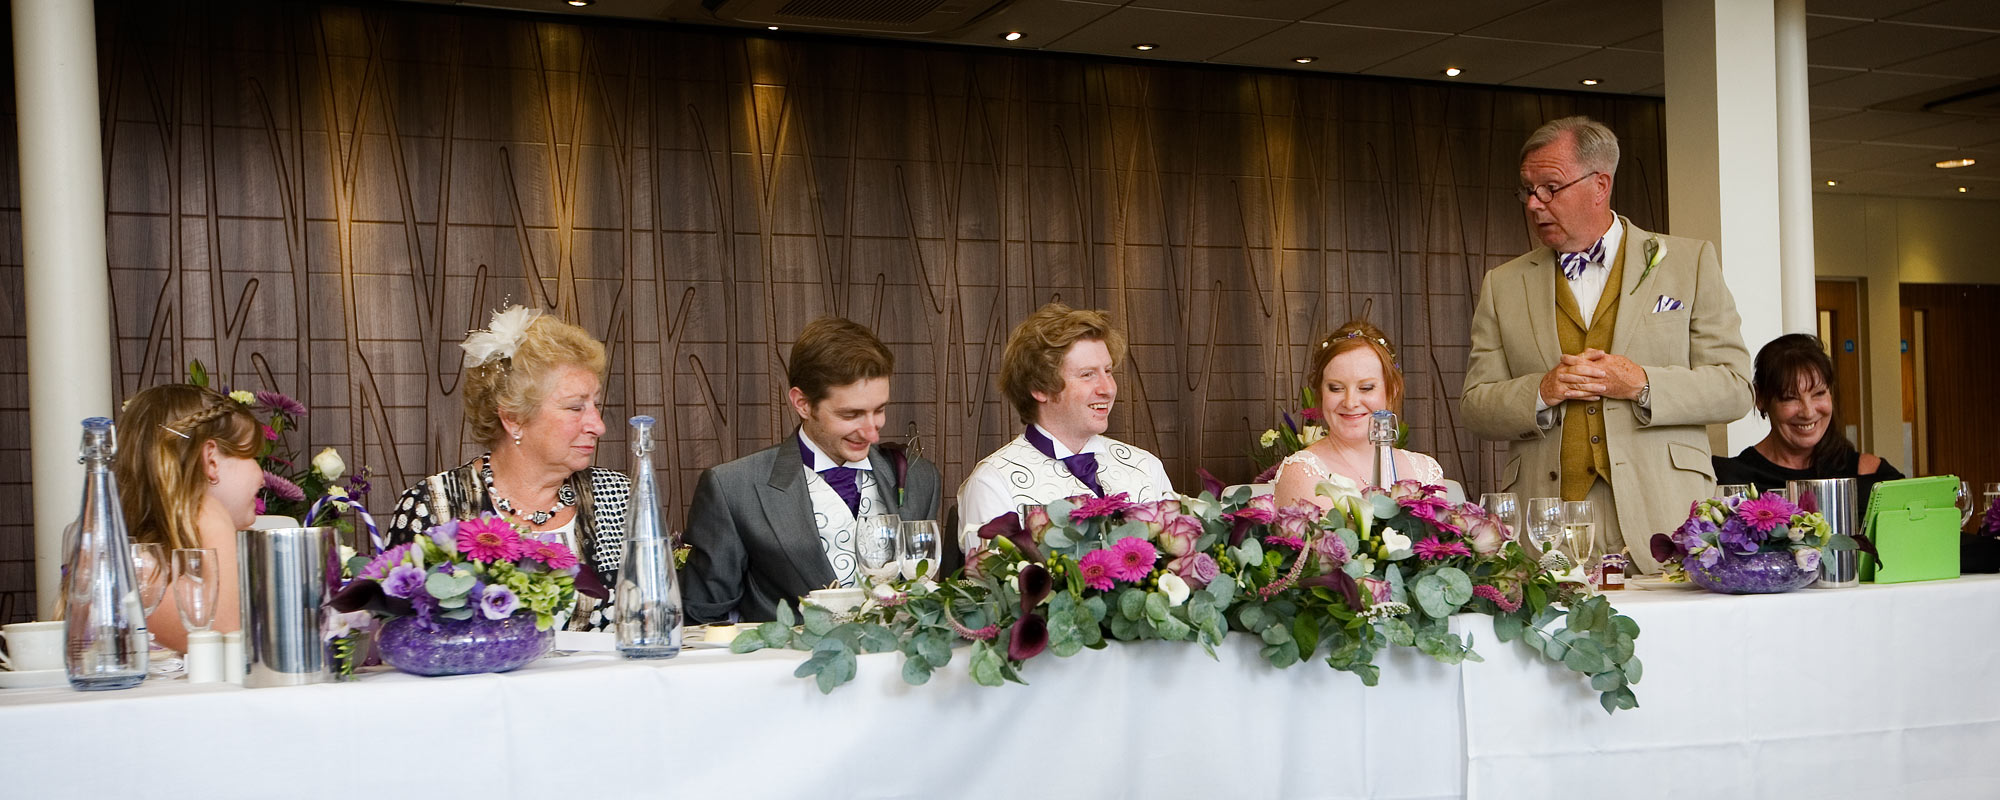 Wedding Speeches at Ashorne Hill